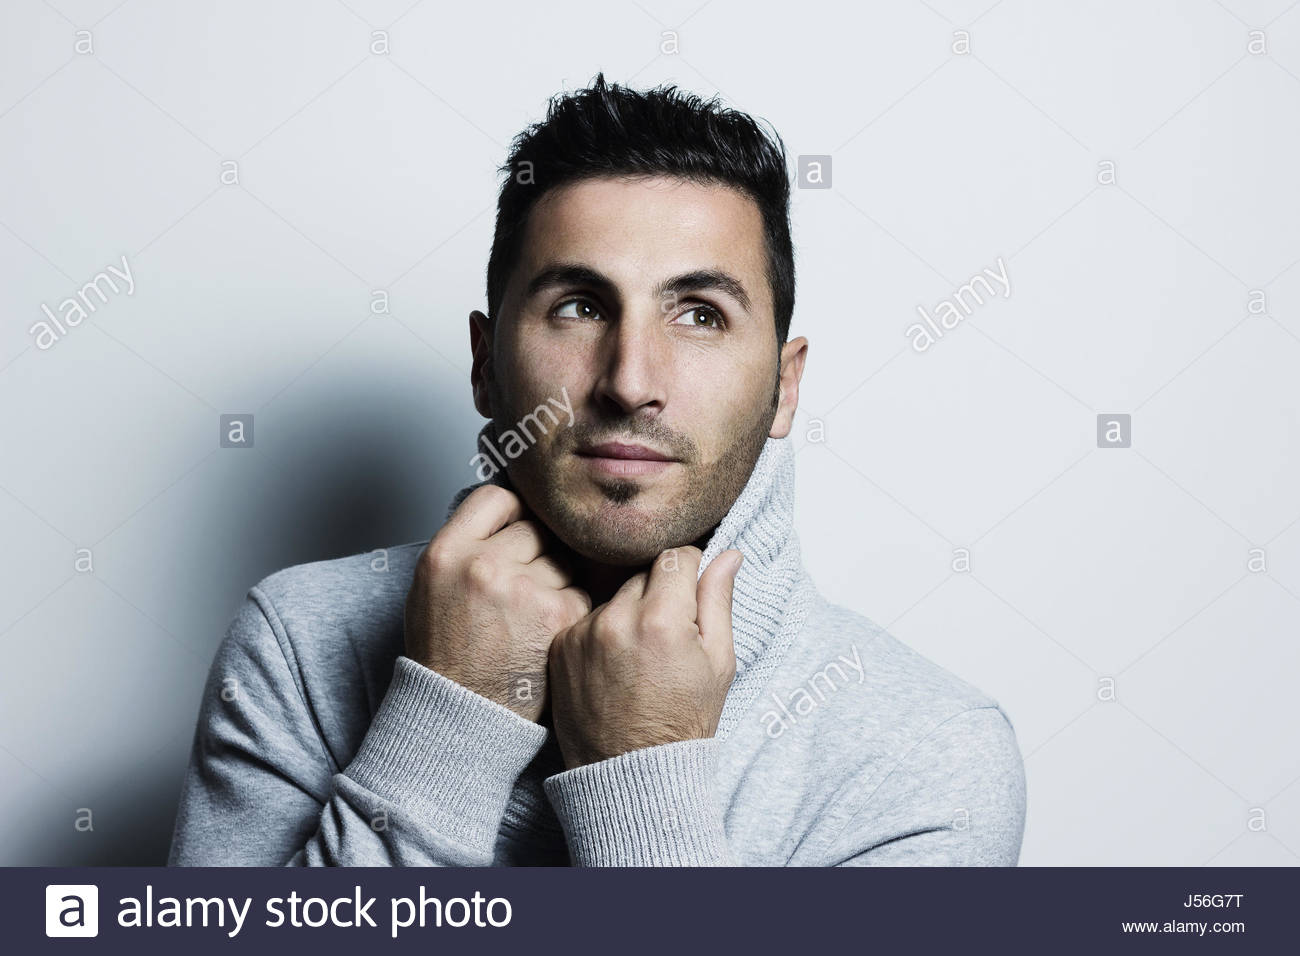 atractive young man warm up with pullover and looking sideways in front of grey background - Stock Image